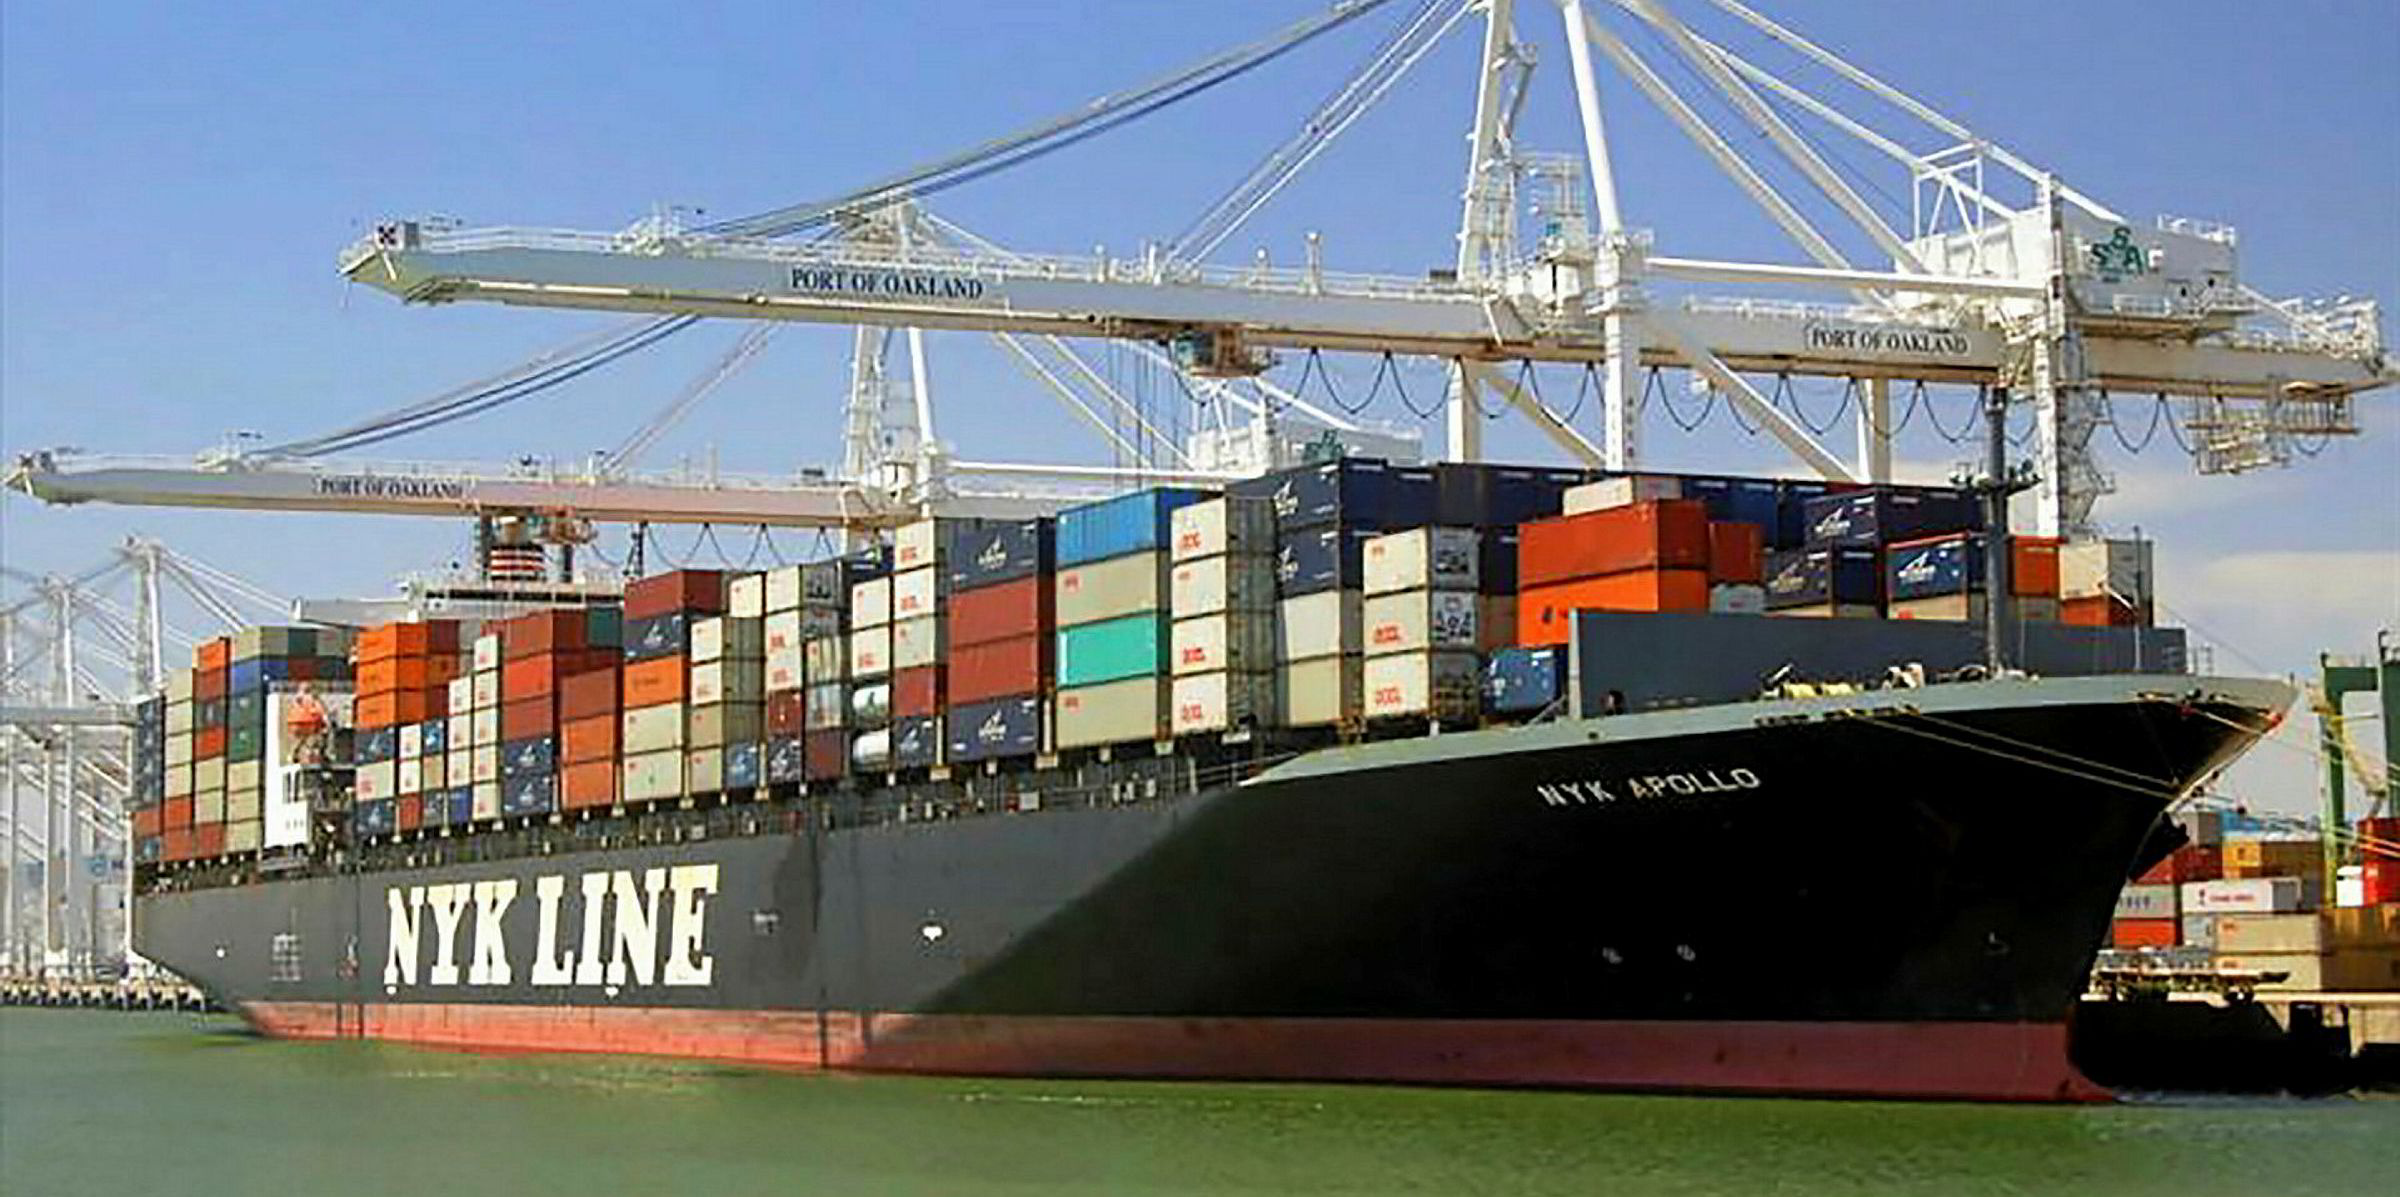 Nyk - Latest shipping and maritime news | TradeWinds